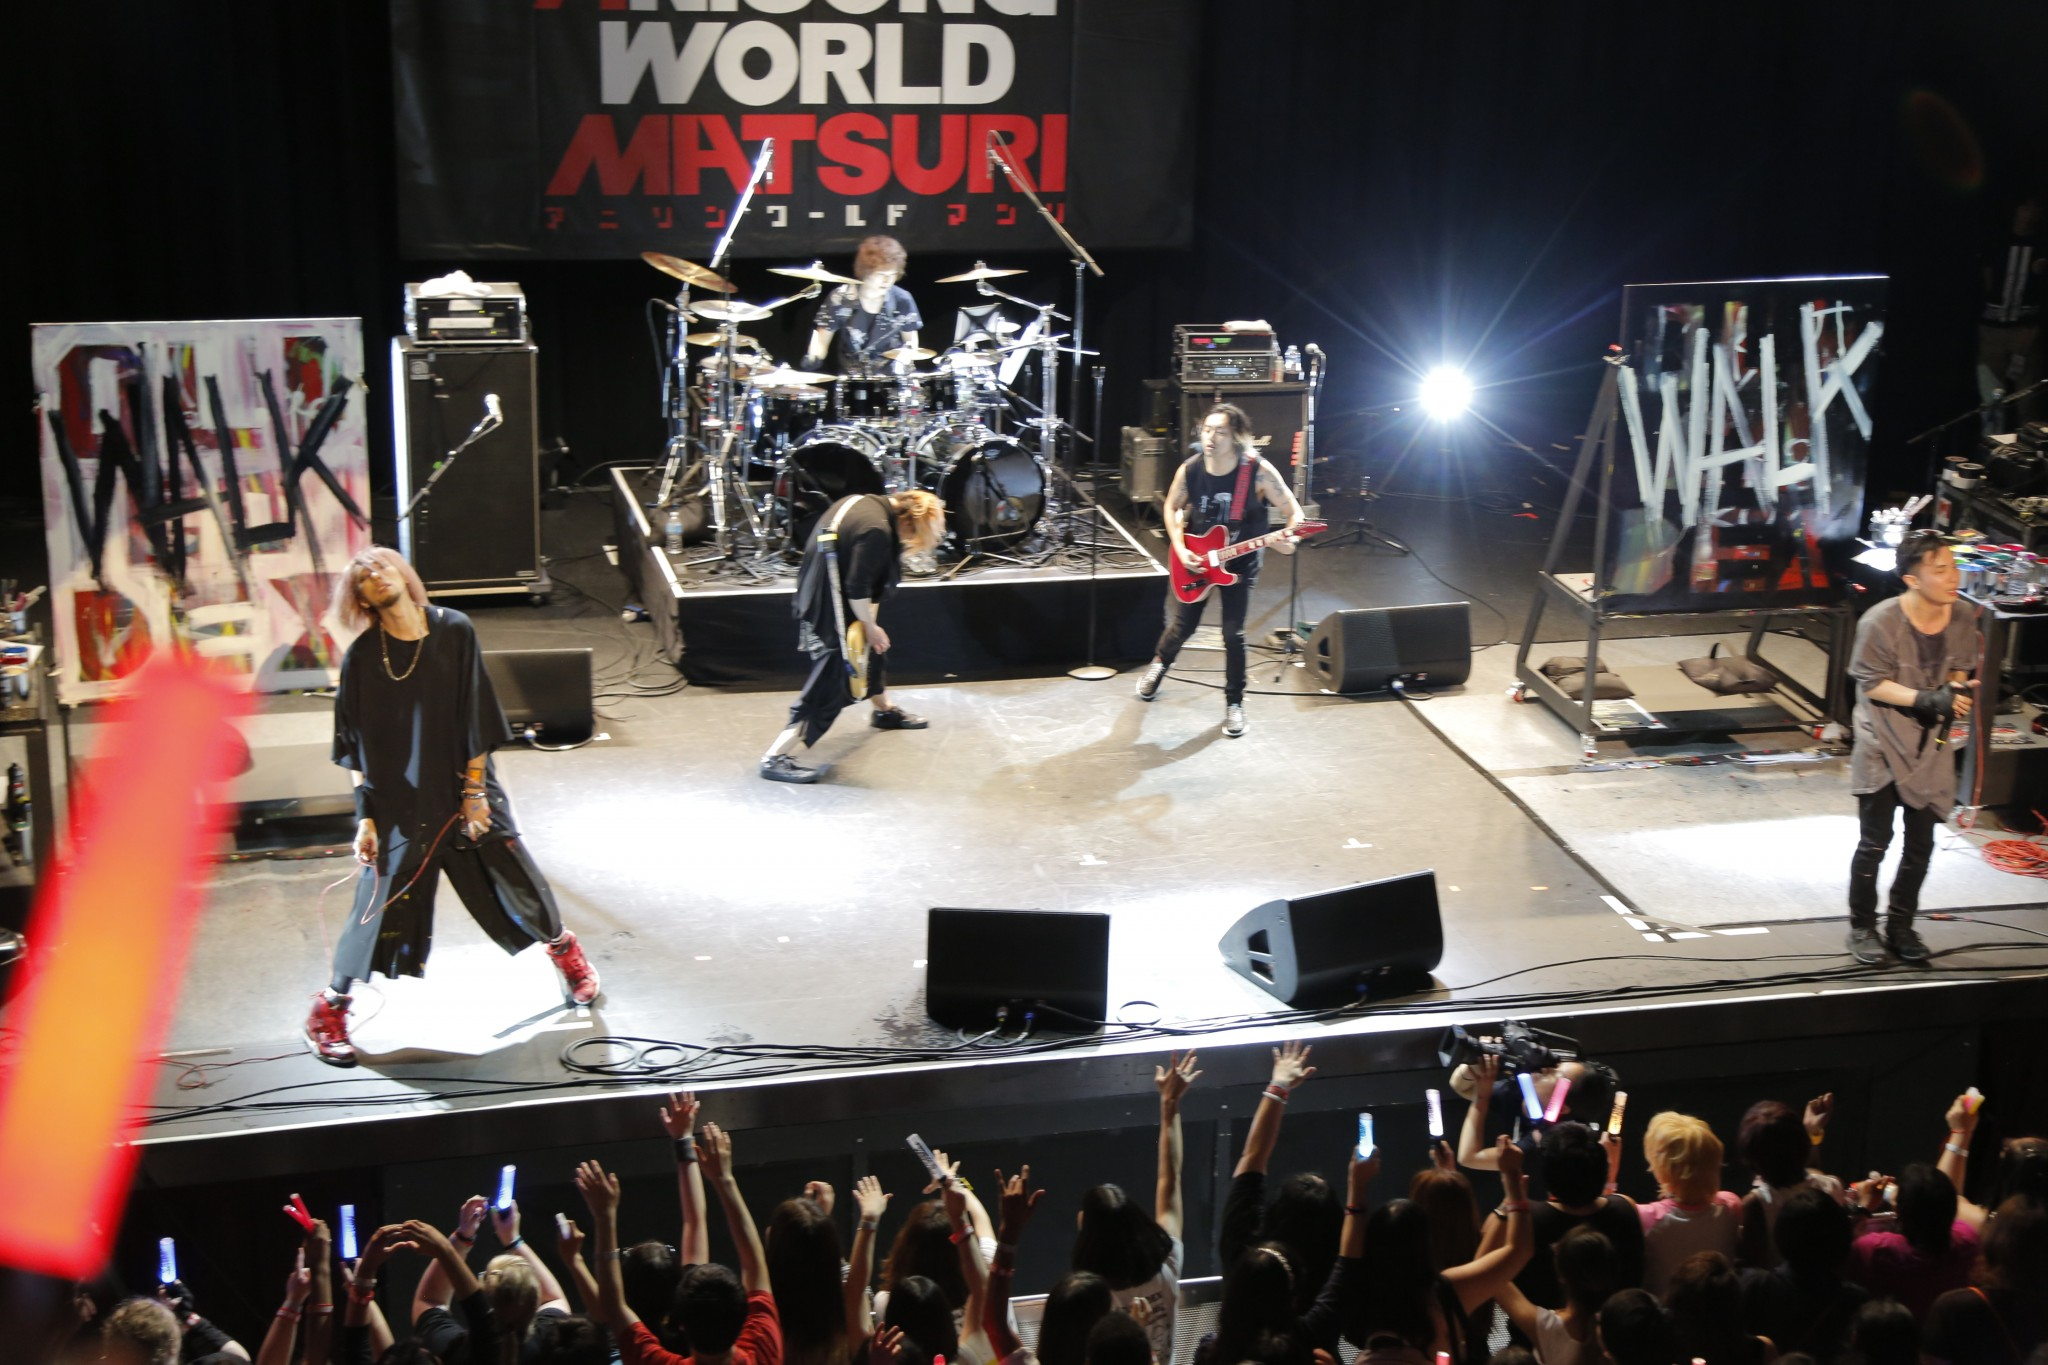 On July 3 Anime Expo 2016 Held A Band Battle Between OLDCODEX And FLOW Titled Anisong World Matsuri Japan Fans Of Both Bands Came To